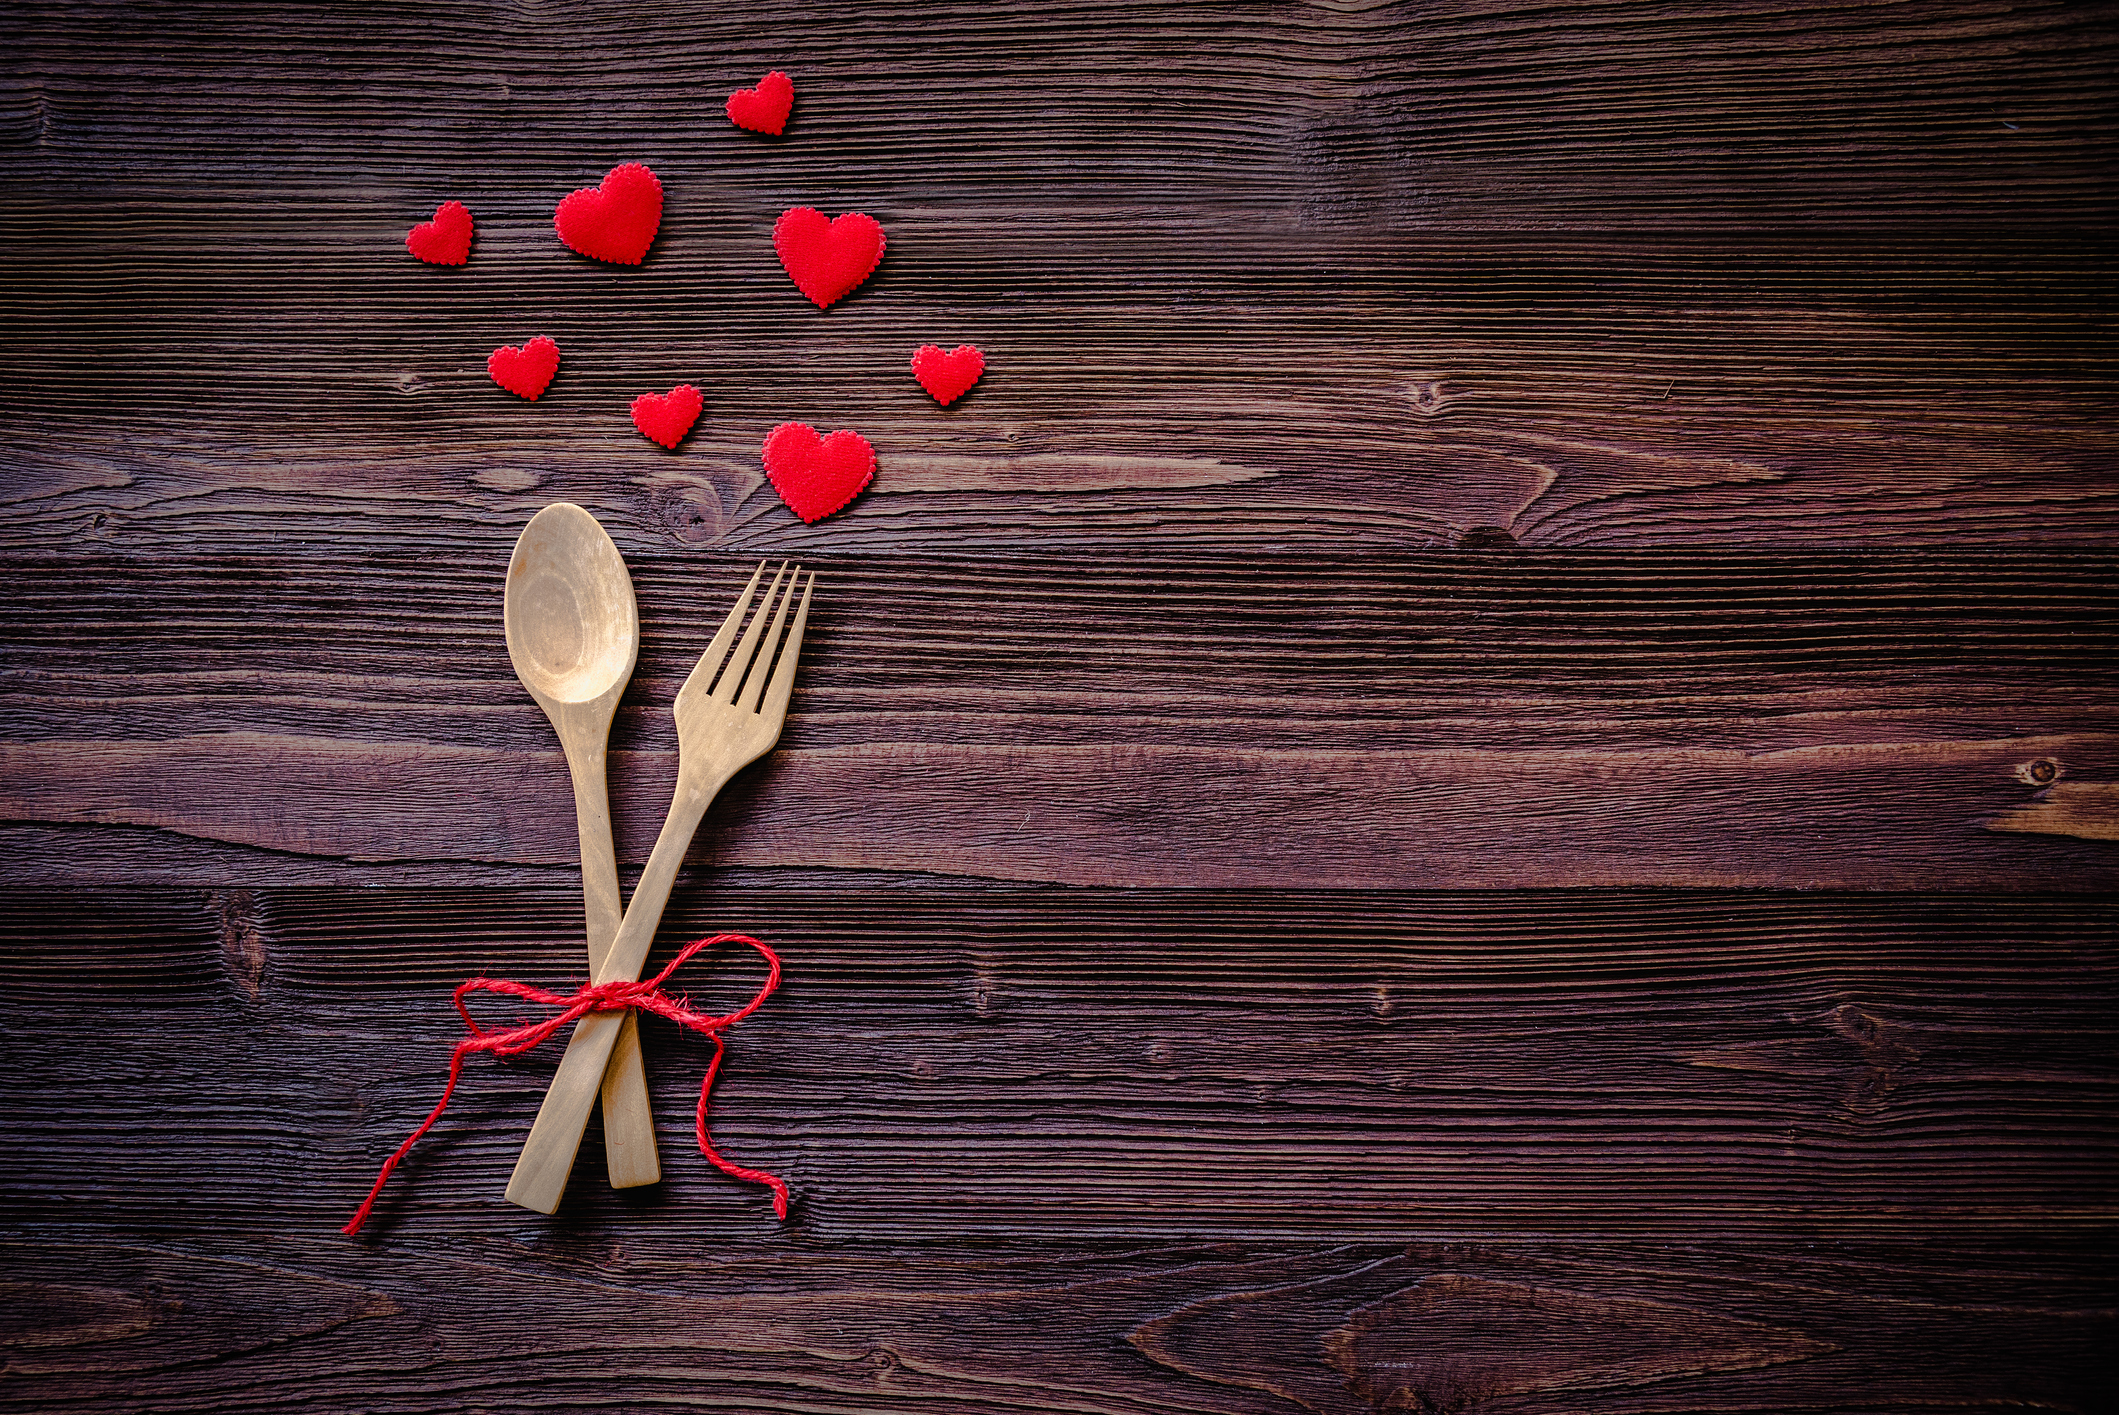 Dinner with table setting in rustic wood style with cutlery, red heart. Valentine day.